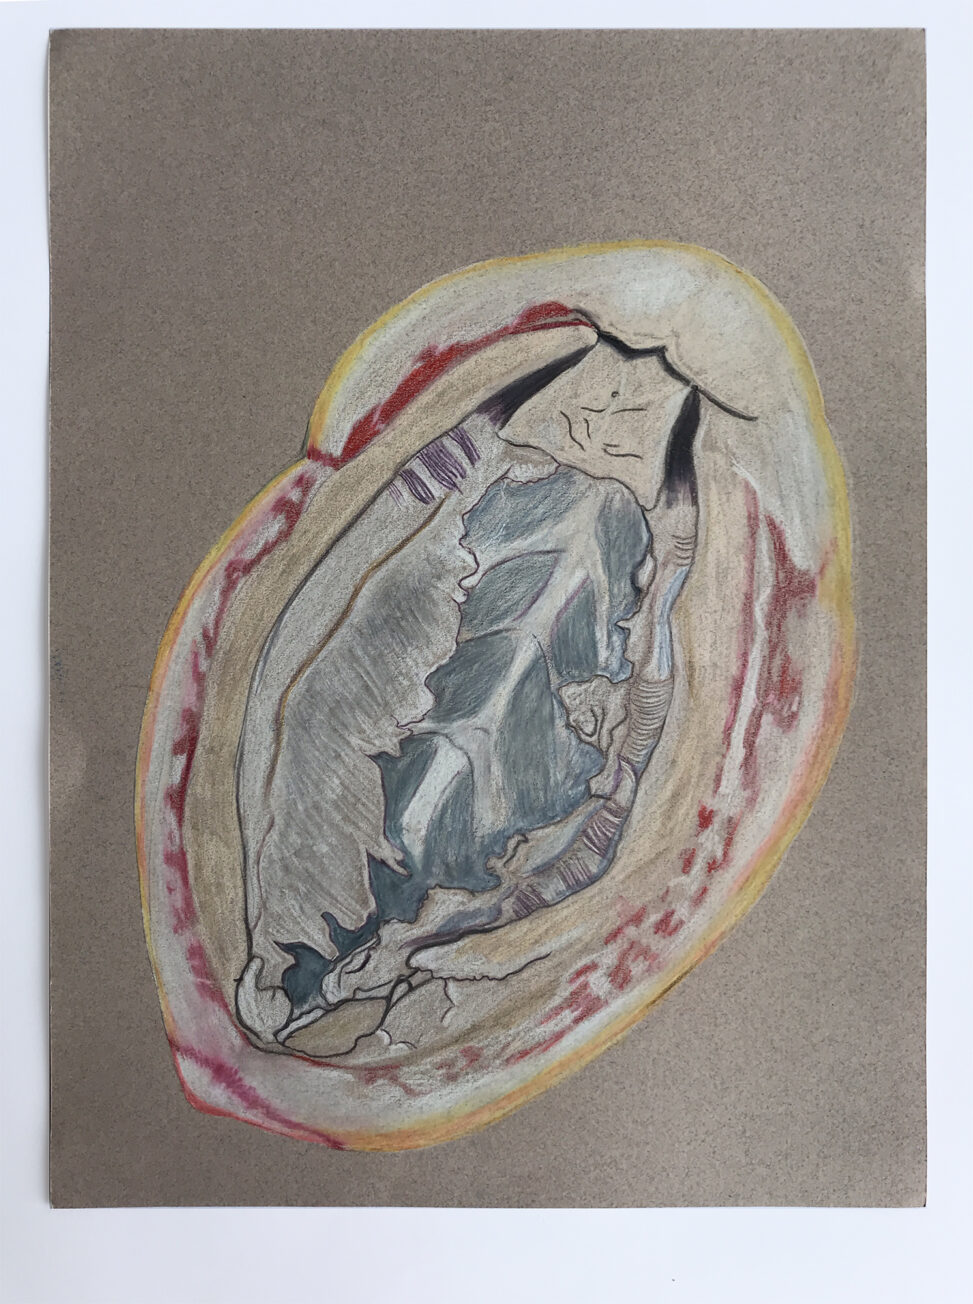 Drawing of the underside of a gumboot chiton on a gray background.